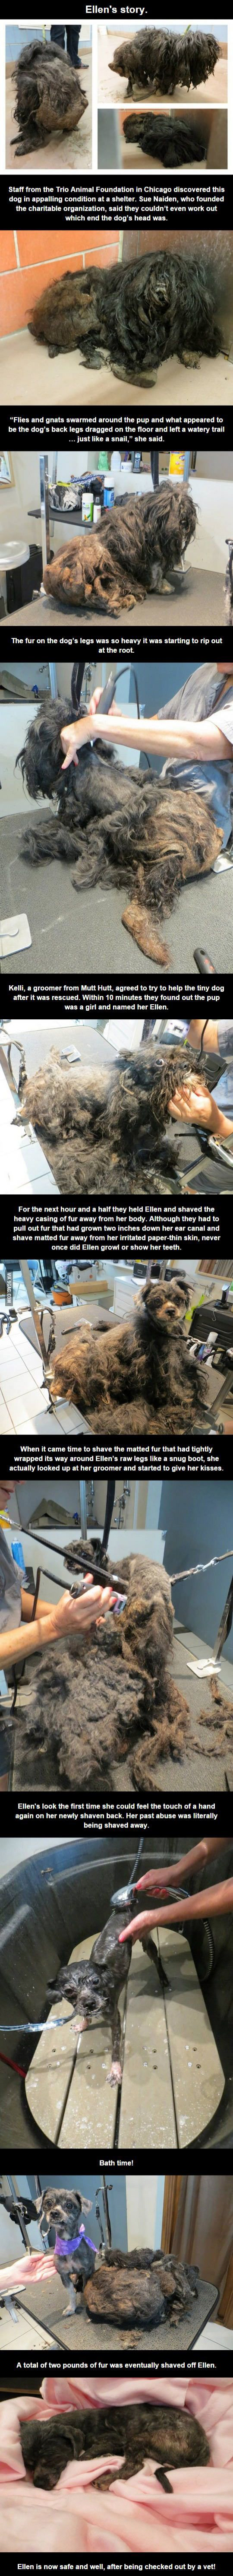 awww poor Ellen I am sooooo happy people were able to help her <3 she deserves it: Hairy Dogs, Aww, Help Animals, Awesome, Pet, Ellen S Story, Puppy